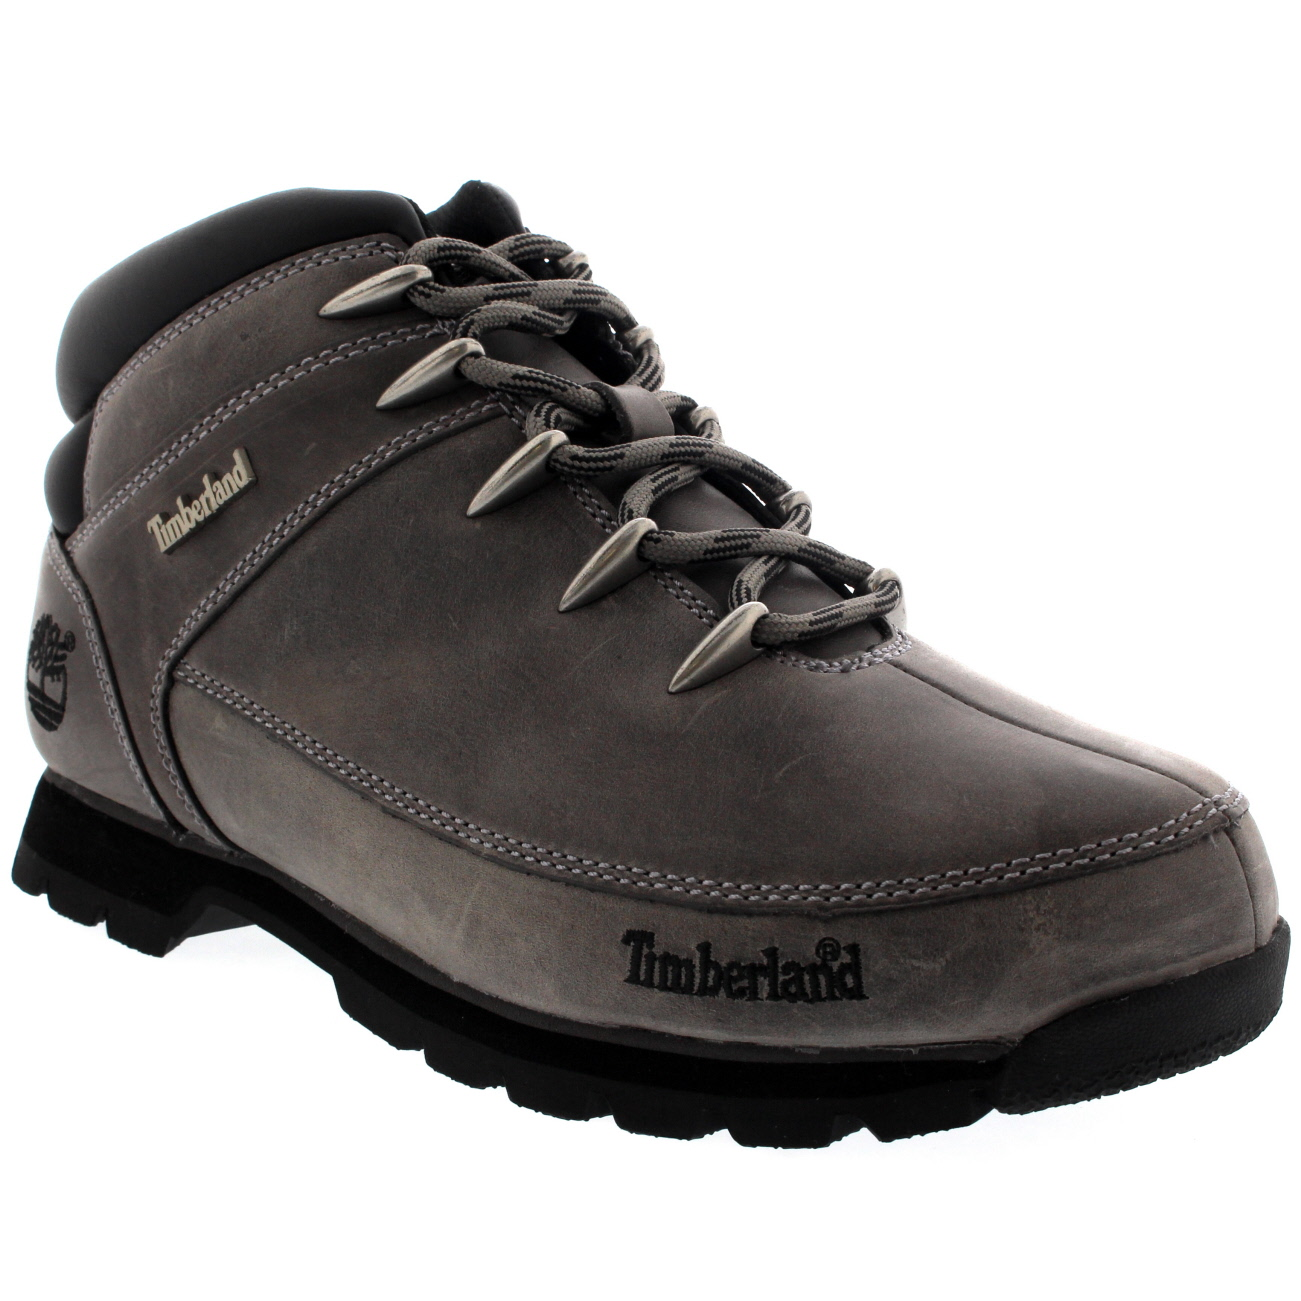 795364513f1 Details about Mens Timberland Euro Sprint Hiker Walking Hiking Winter Ankle  Boots US 7.5-12.5